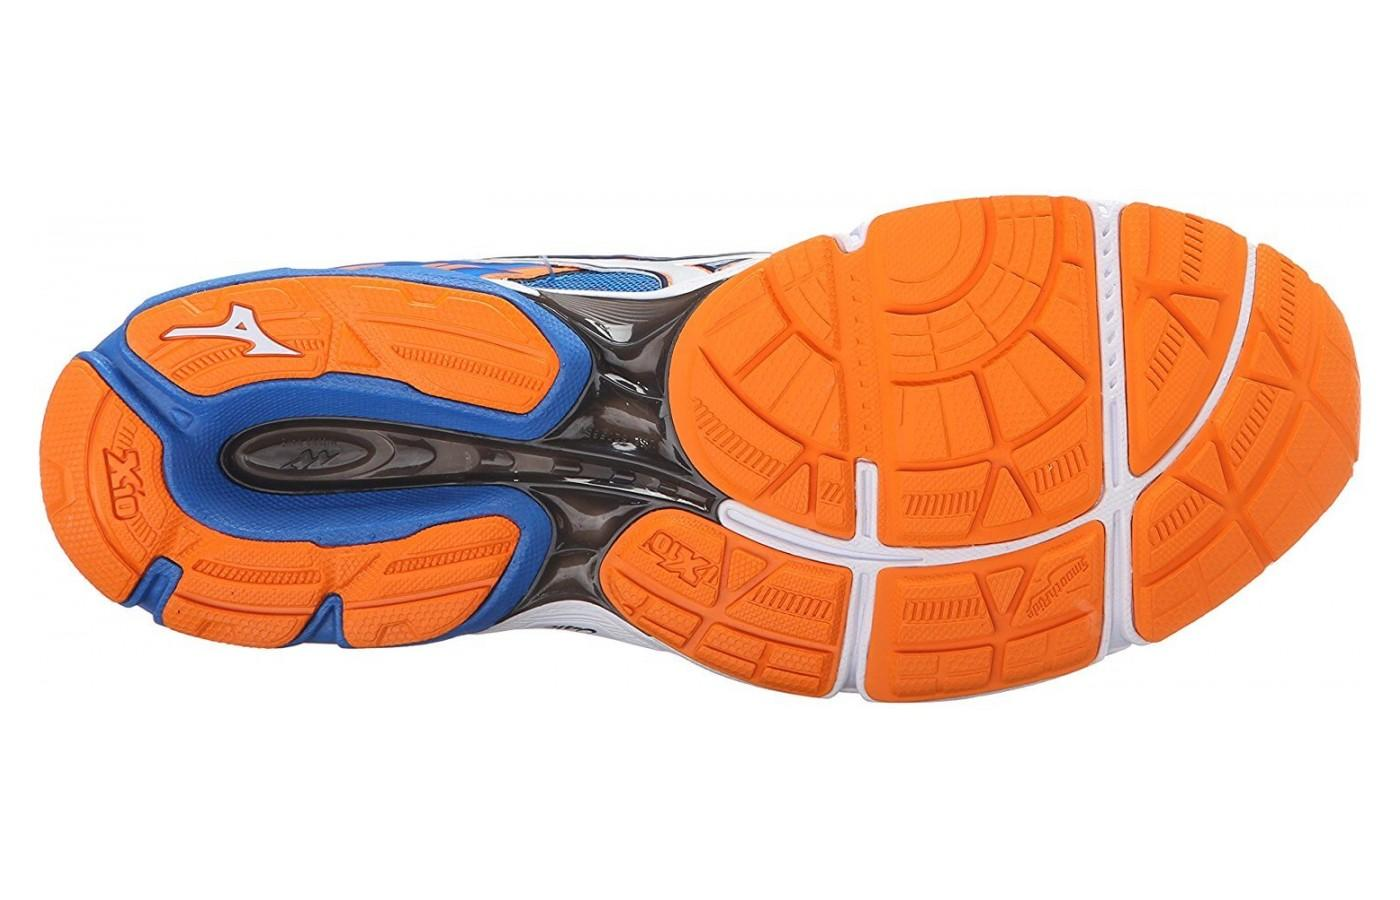 Duel rubber outsole for durability and grip